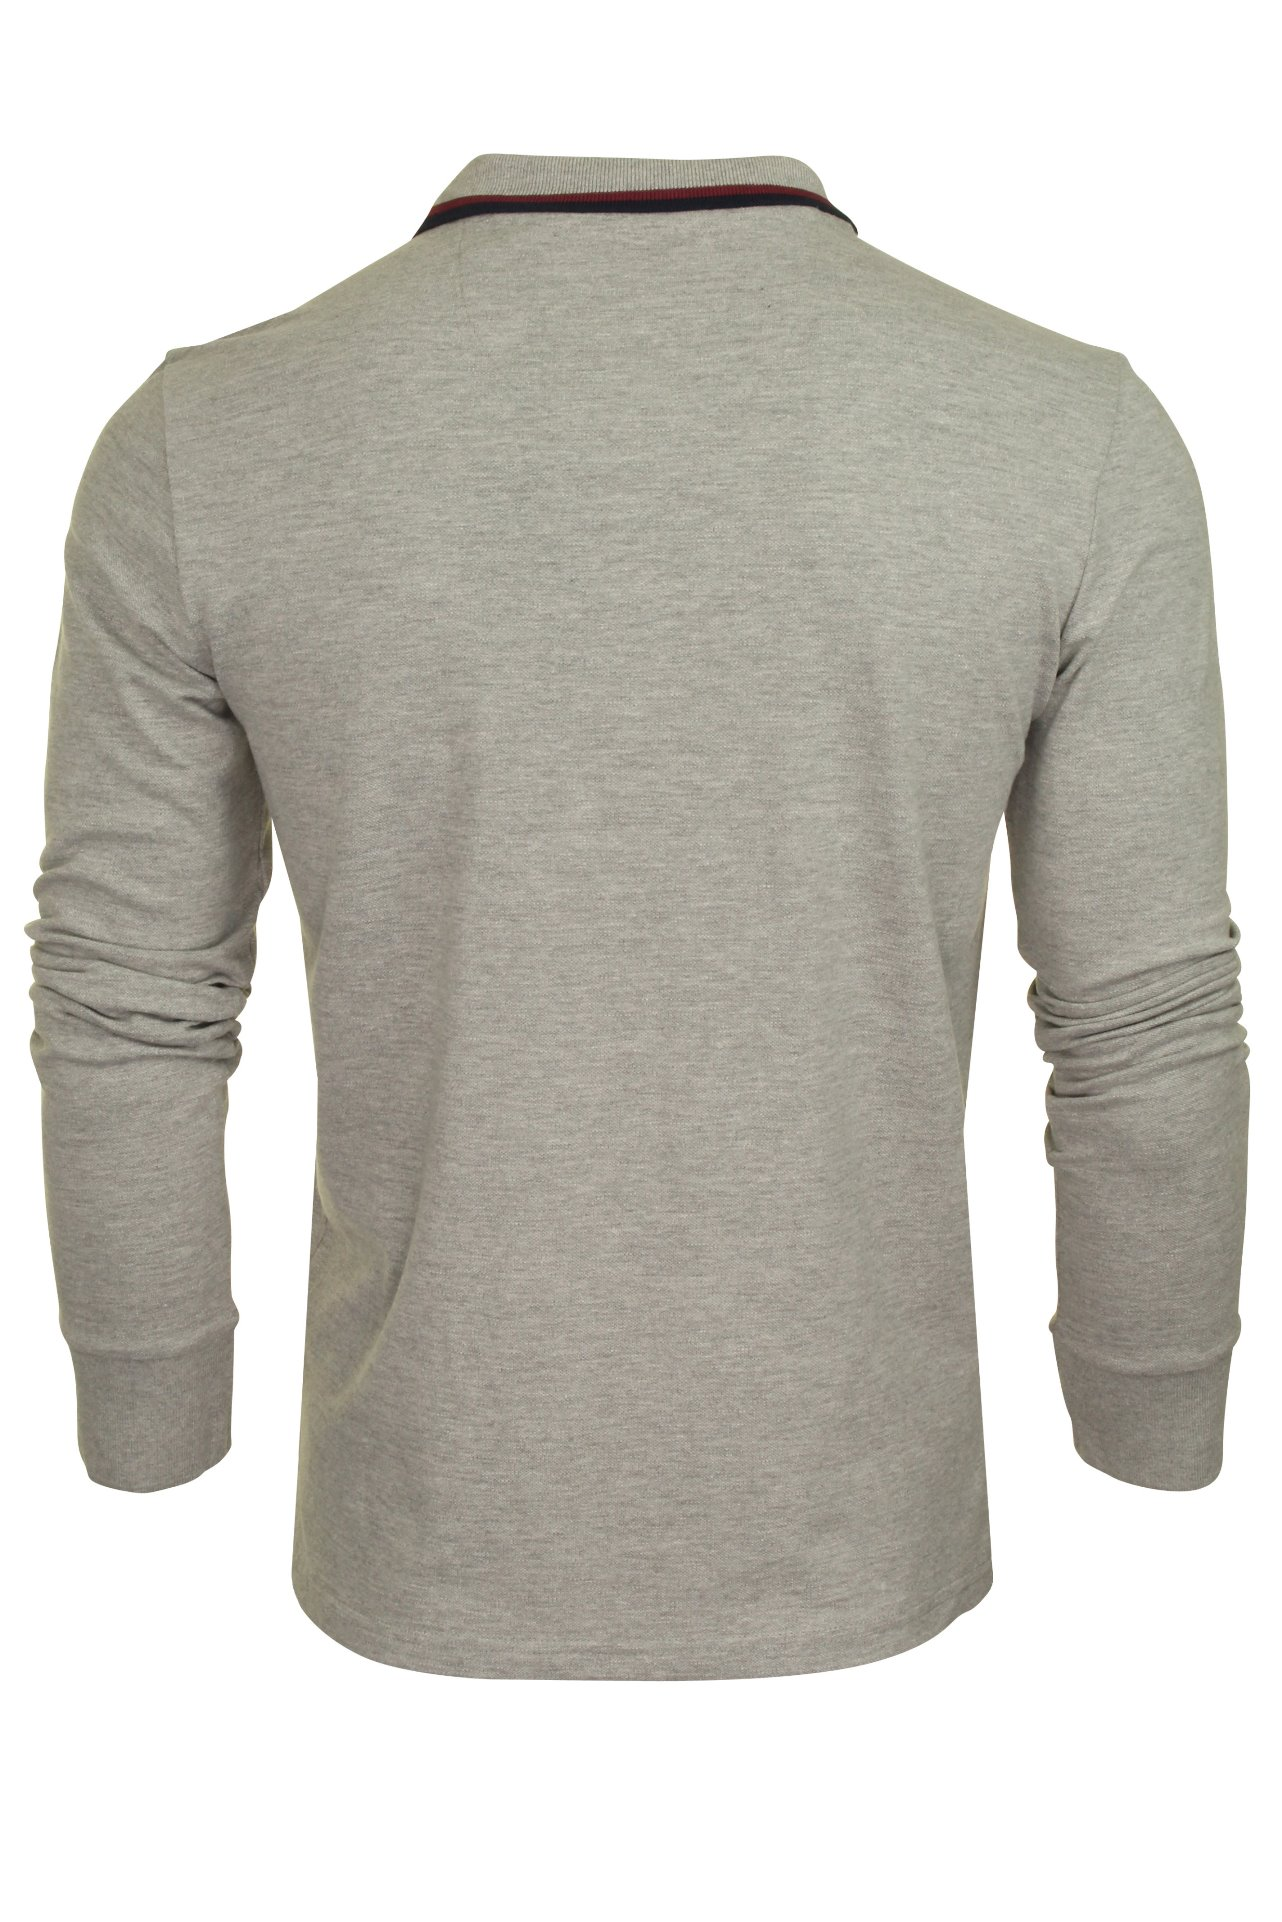 Mens-Polo-T-Shirt-by-Brave-Soul-039-Kennedy-039-Tipped-Collar-Long-Sleeved thumbnail 11